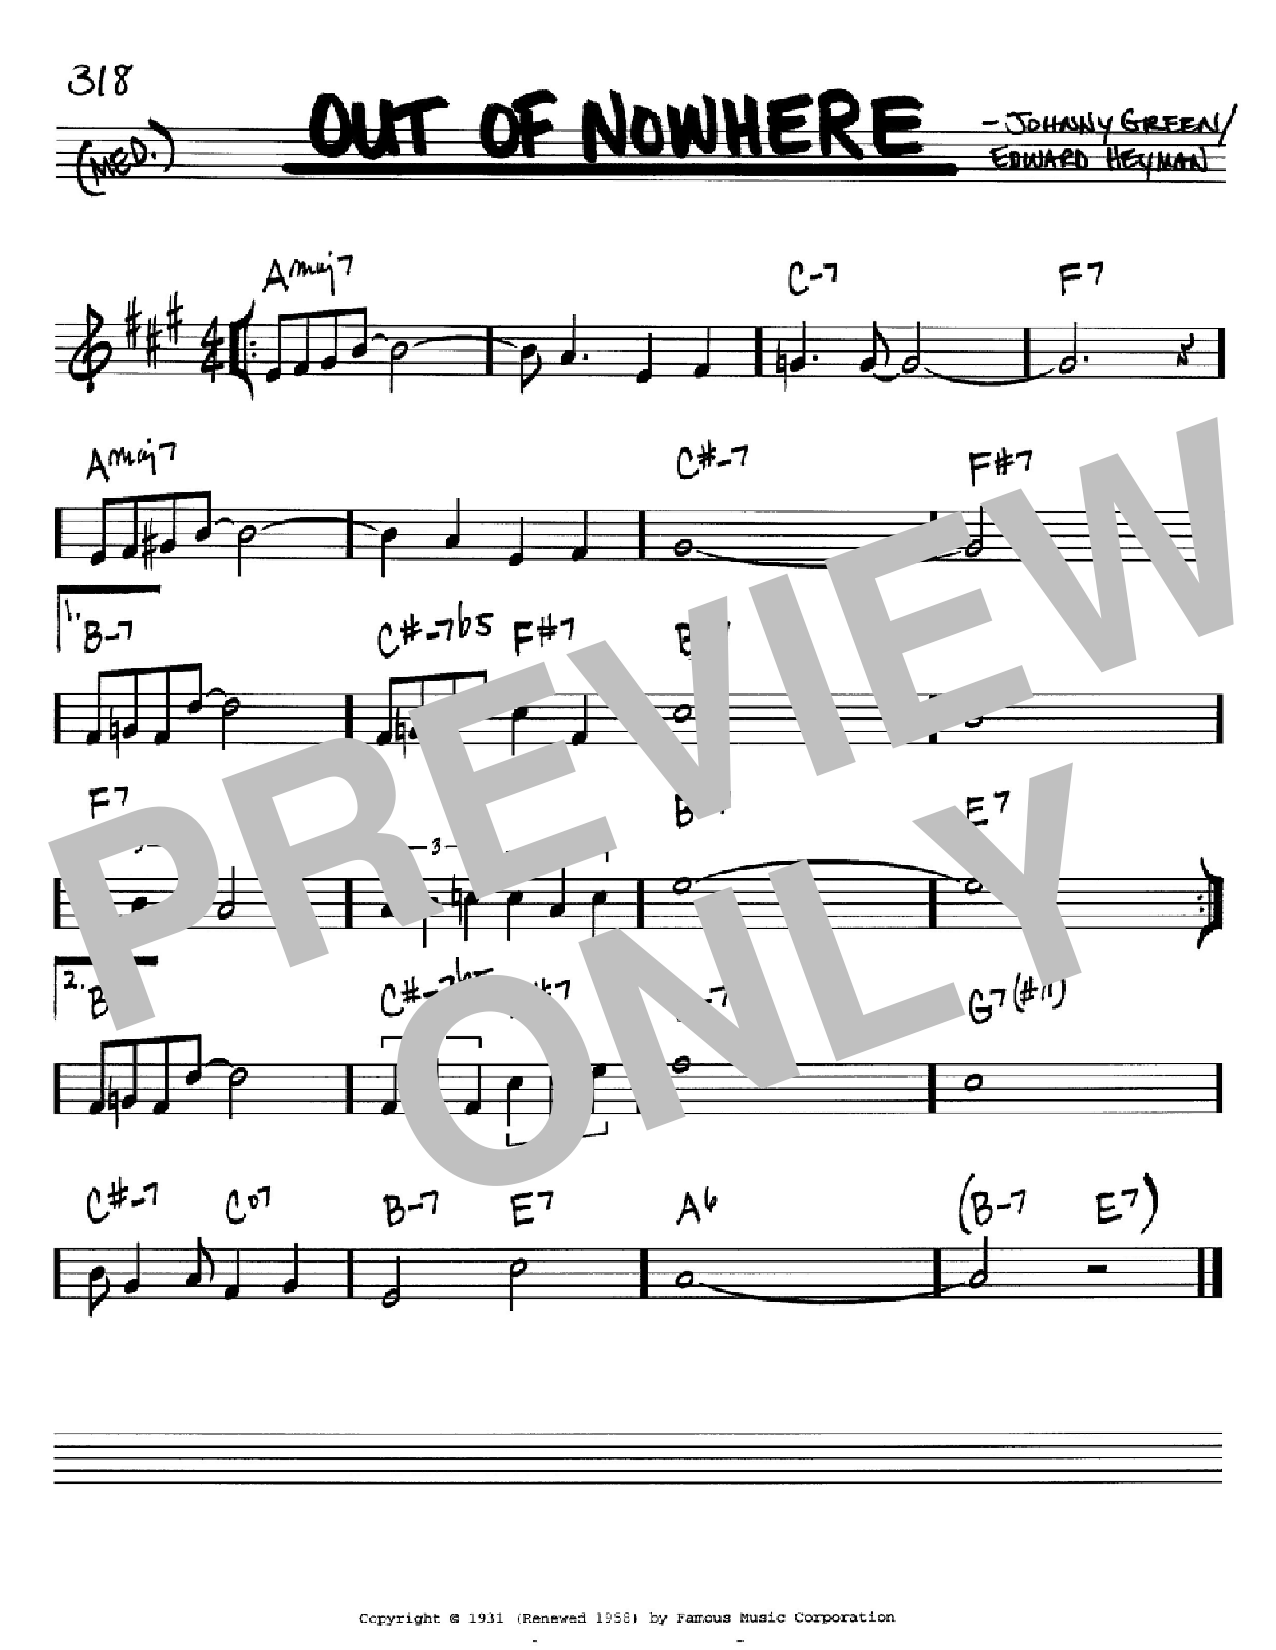 Out of nowhere sheet music by edward heyman real book melody edward heyman out of nowhere real book melody chords bb instruments hexwebz Choice Image